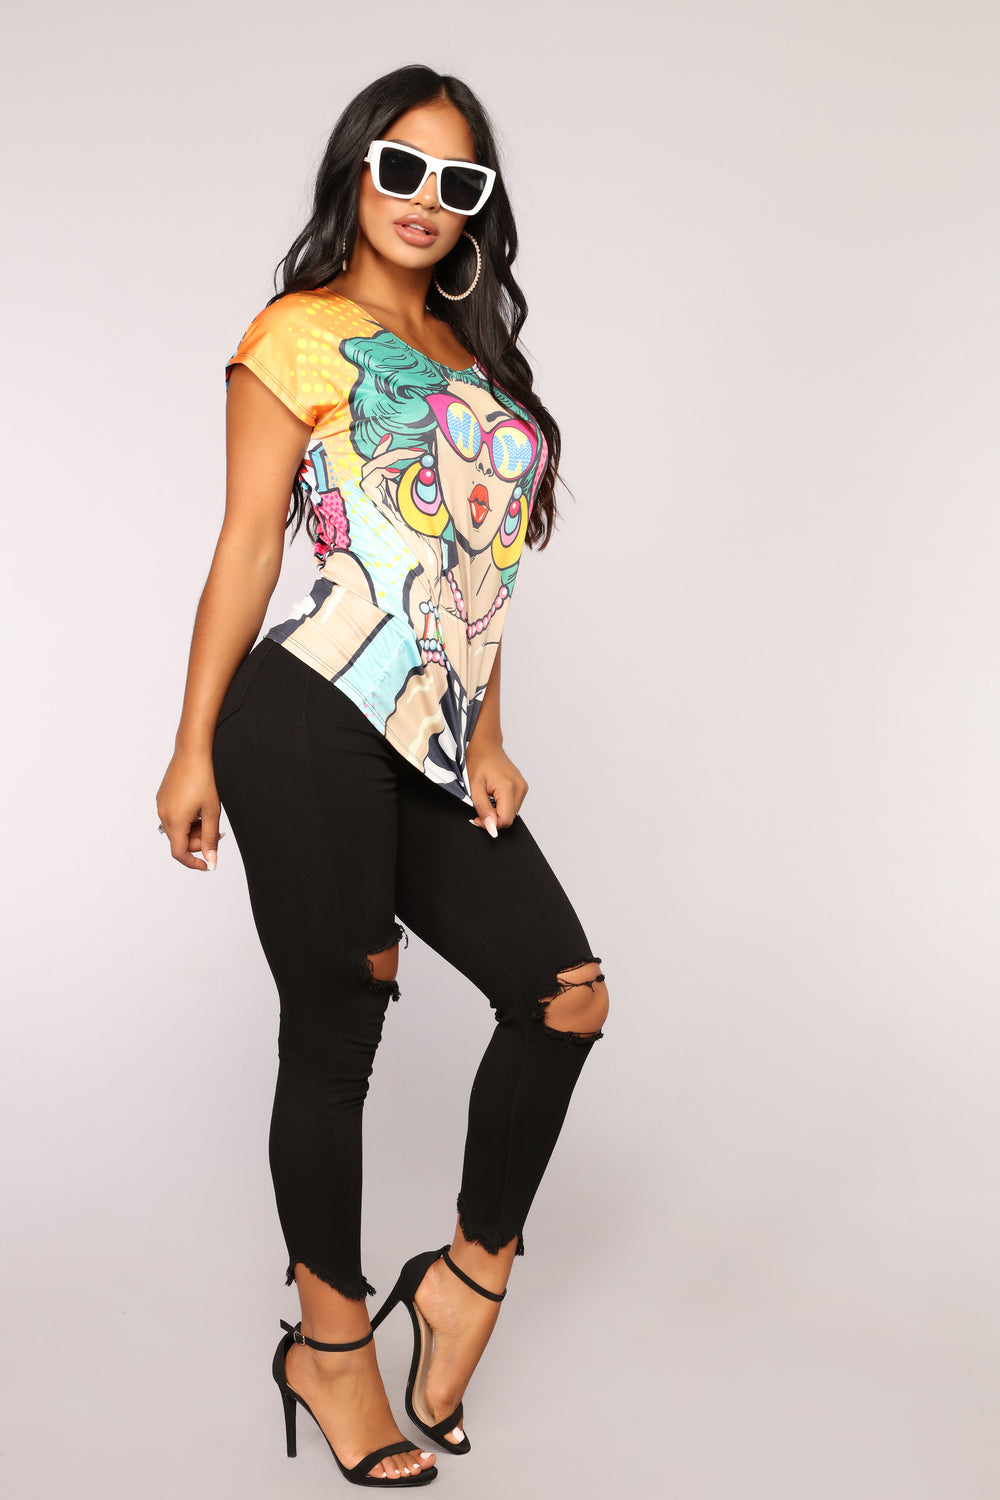 Boom Goes The Dynamite Tee - White/Multi